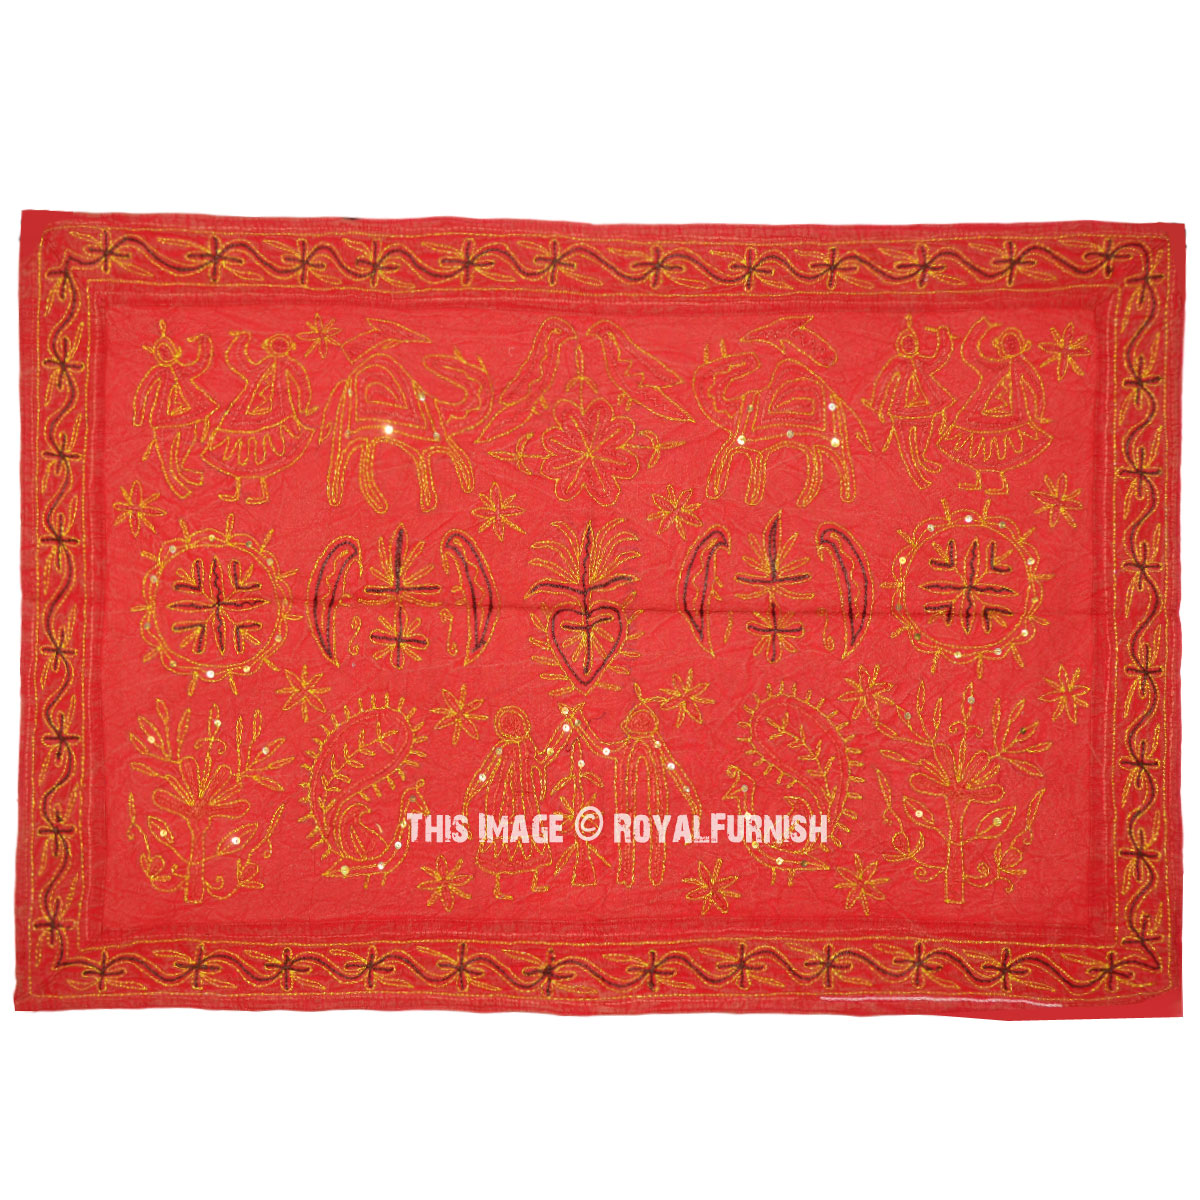 Unique One Of A Kind Red Ari Embroidered Fabric Wall